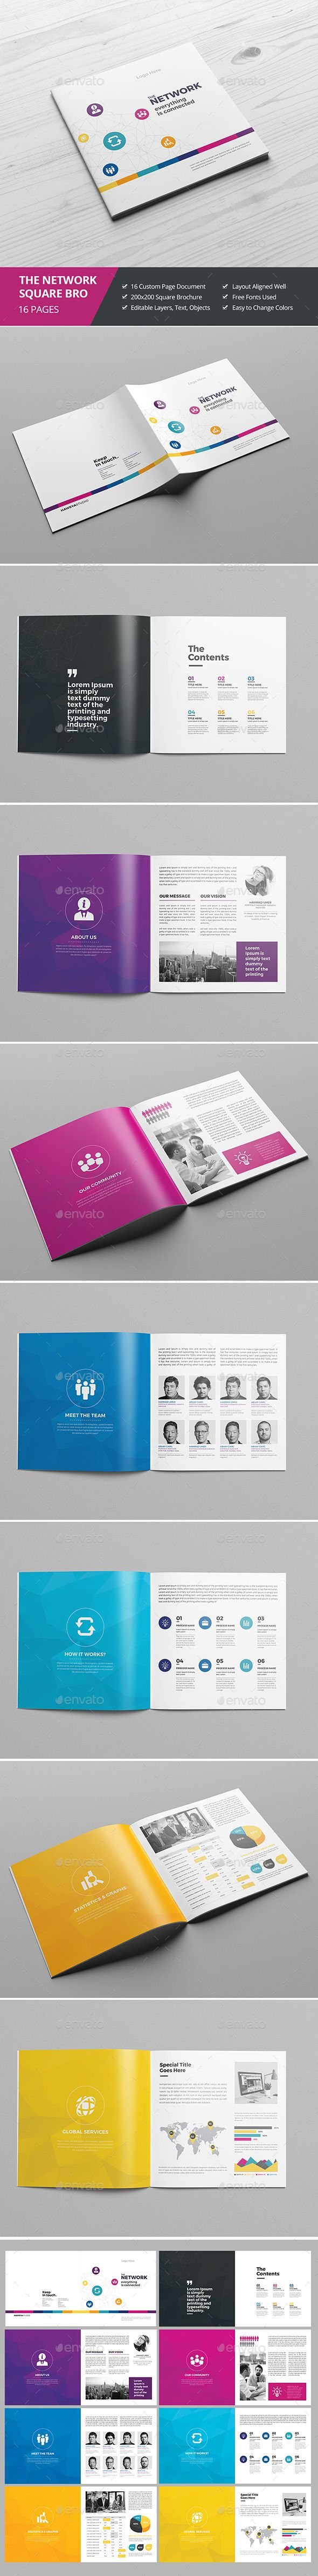 Haweya Colorful Square Brochure  - InDesign Template • Only available here ➝ http://graphicriver.net/item/haweya-colorful-square-brochure-/16833245?ref=pxcr